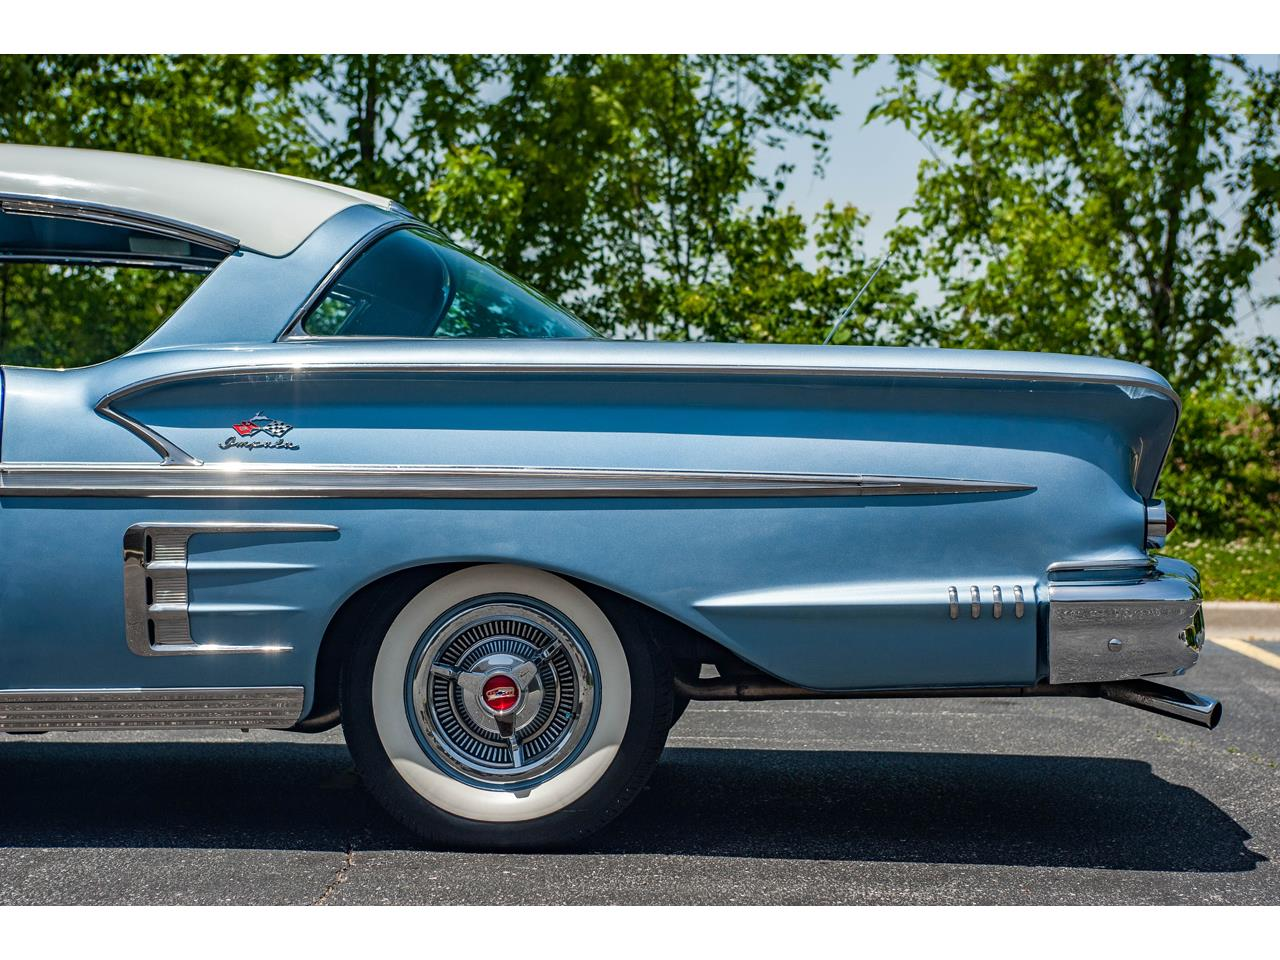 Large Picture of 1958 Chevrolet Impala located in O'Fallon Illinois Offered by Gateway Classic Cars - St. Louis - QB9Q